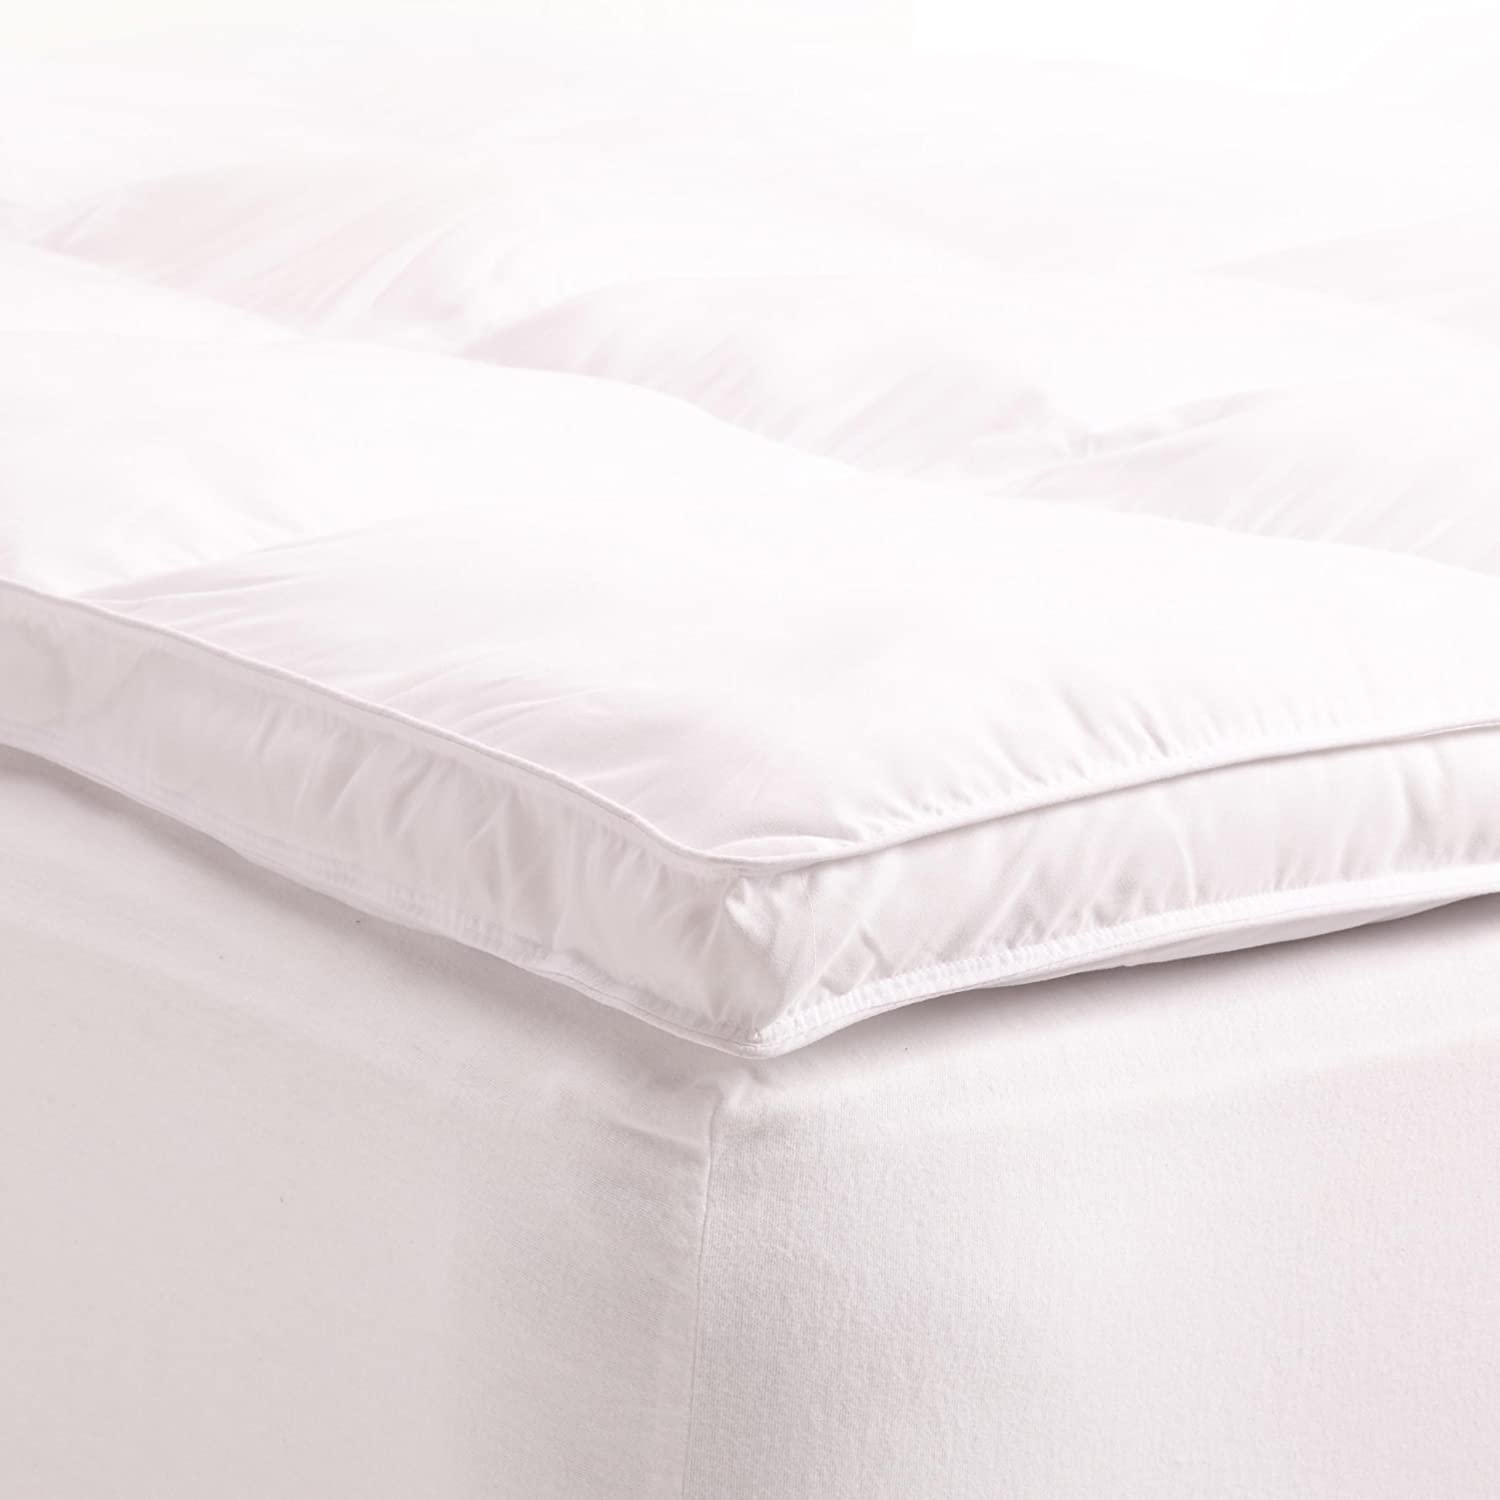 pillow system topper products latex mattress cotton my sleep organic myorganicsleep certified support all natural